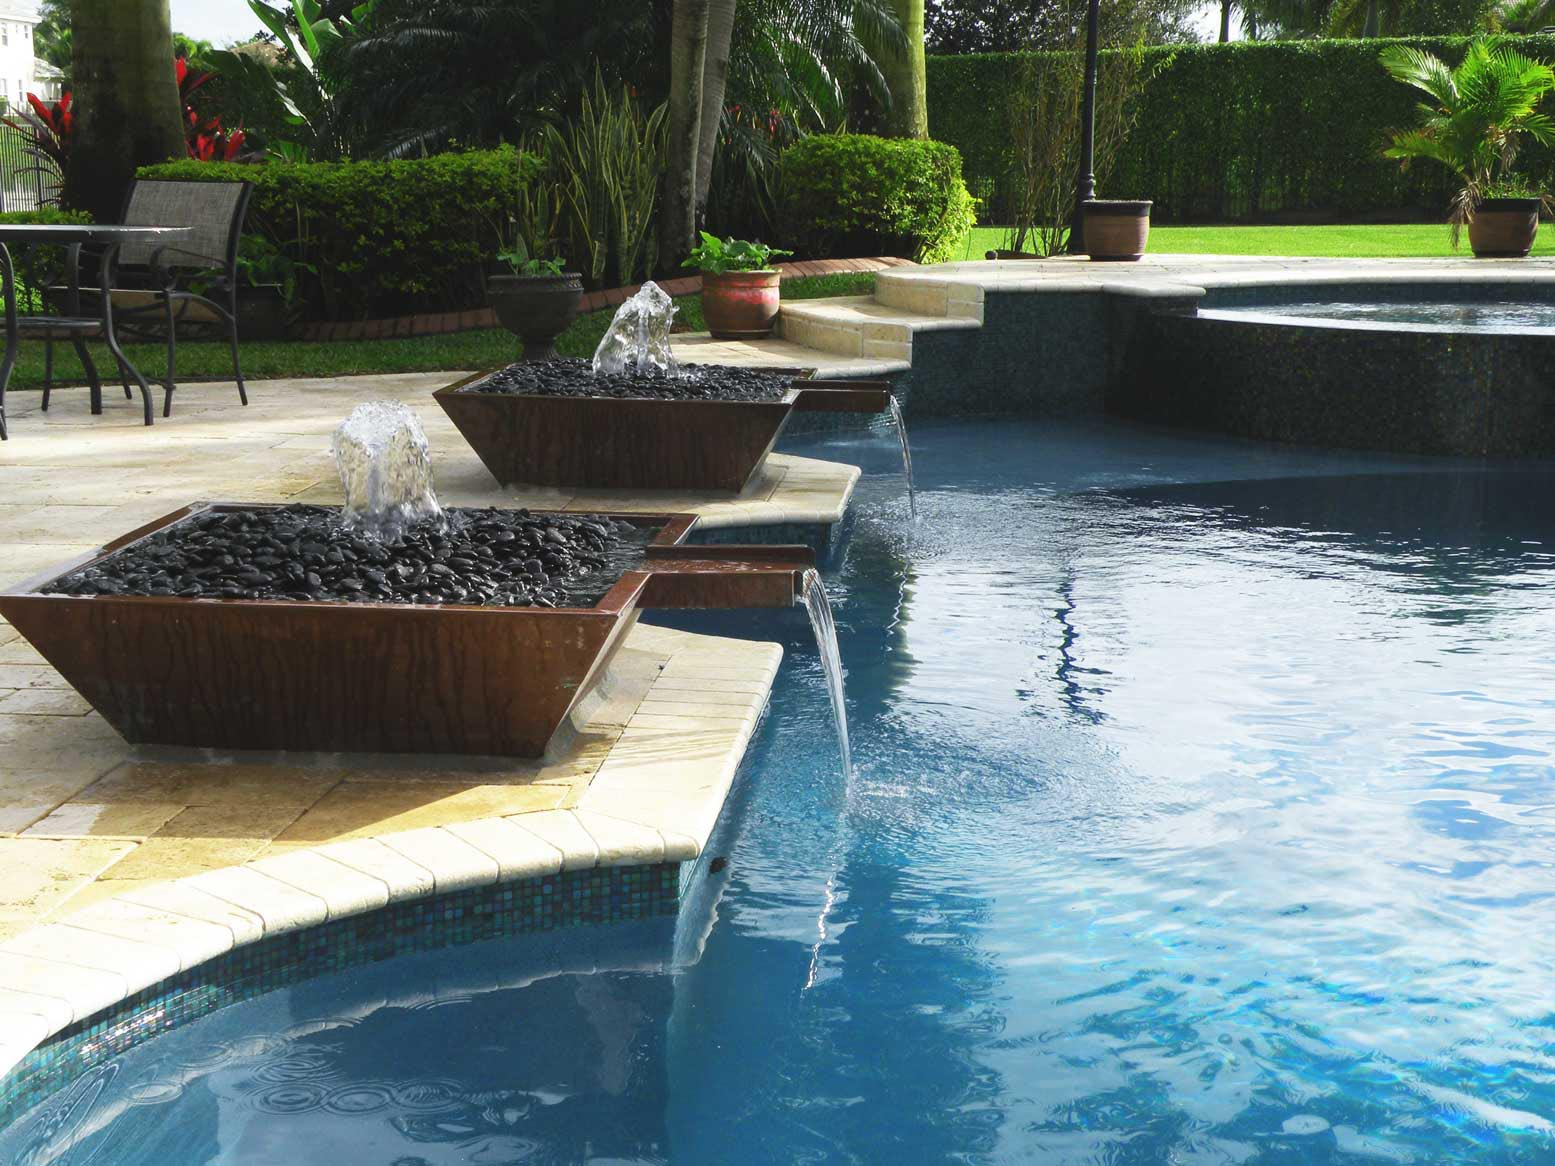 Swimming Pool Fountains : Swimming pool fountains waterfalls fountain design ideas